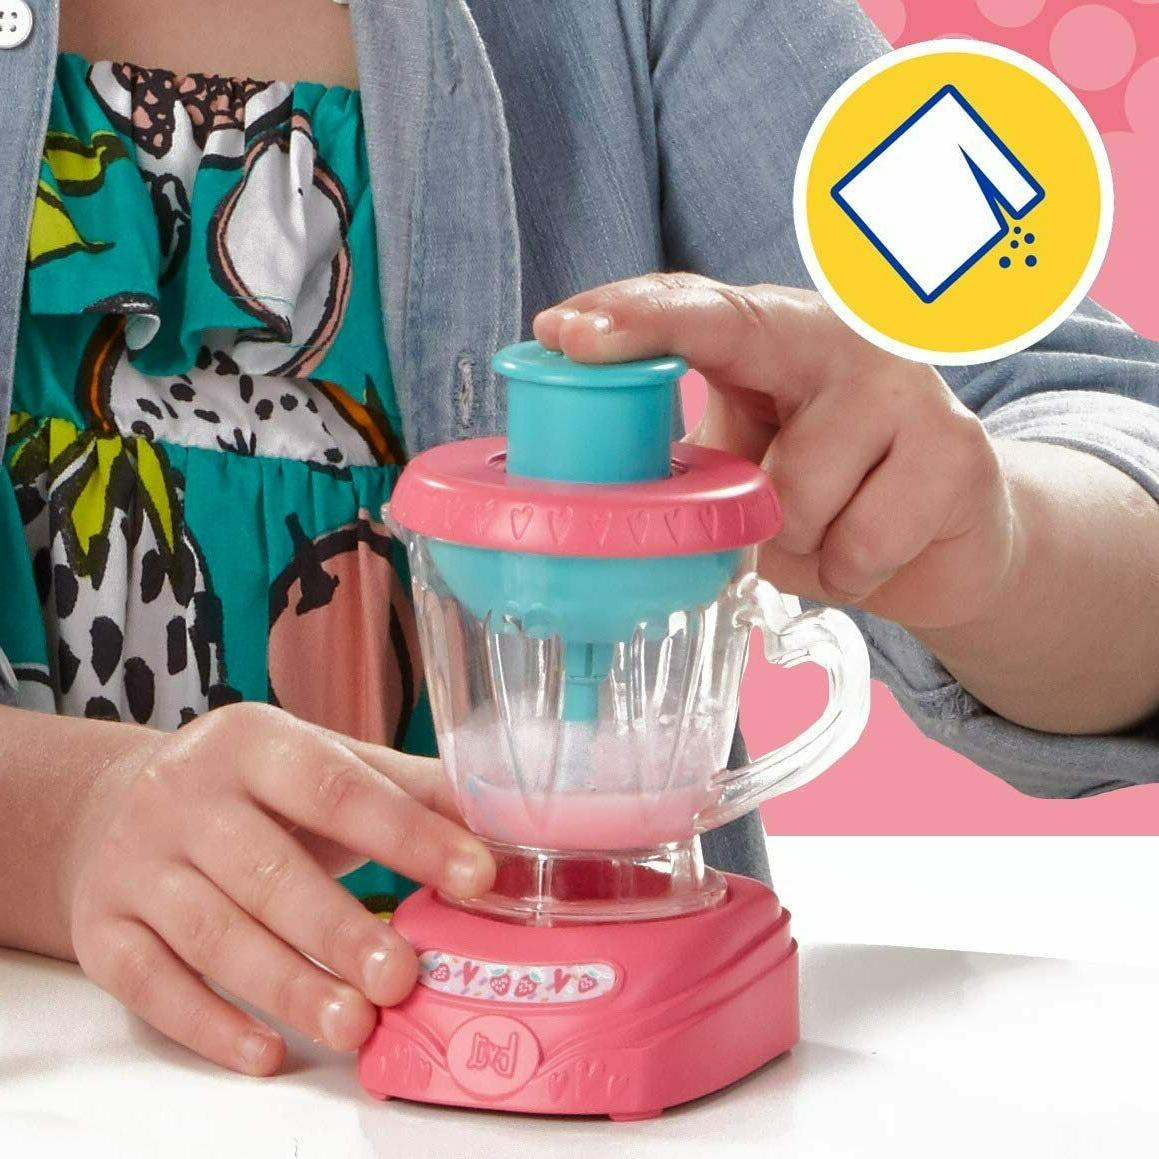 Mixer Baby Shake,Accessories, Blonde Hair Toy,Kids Ages 3 and